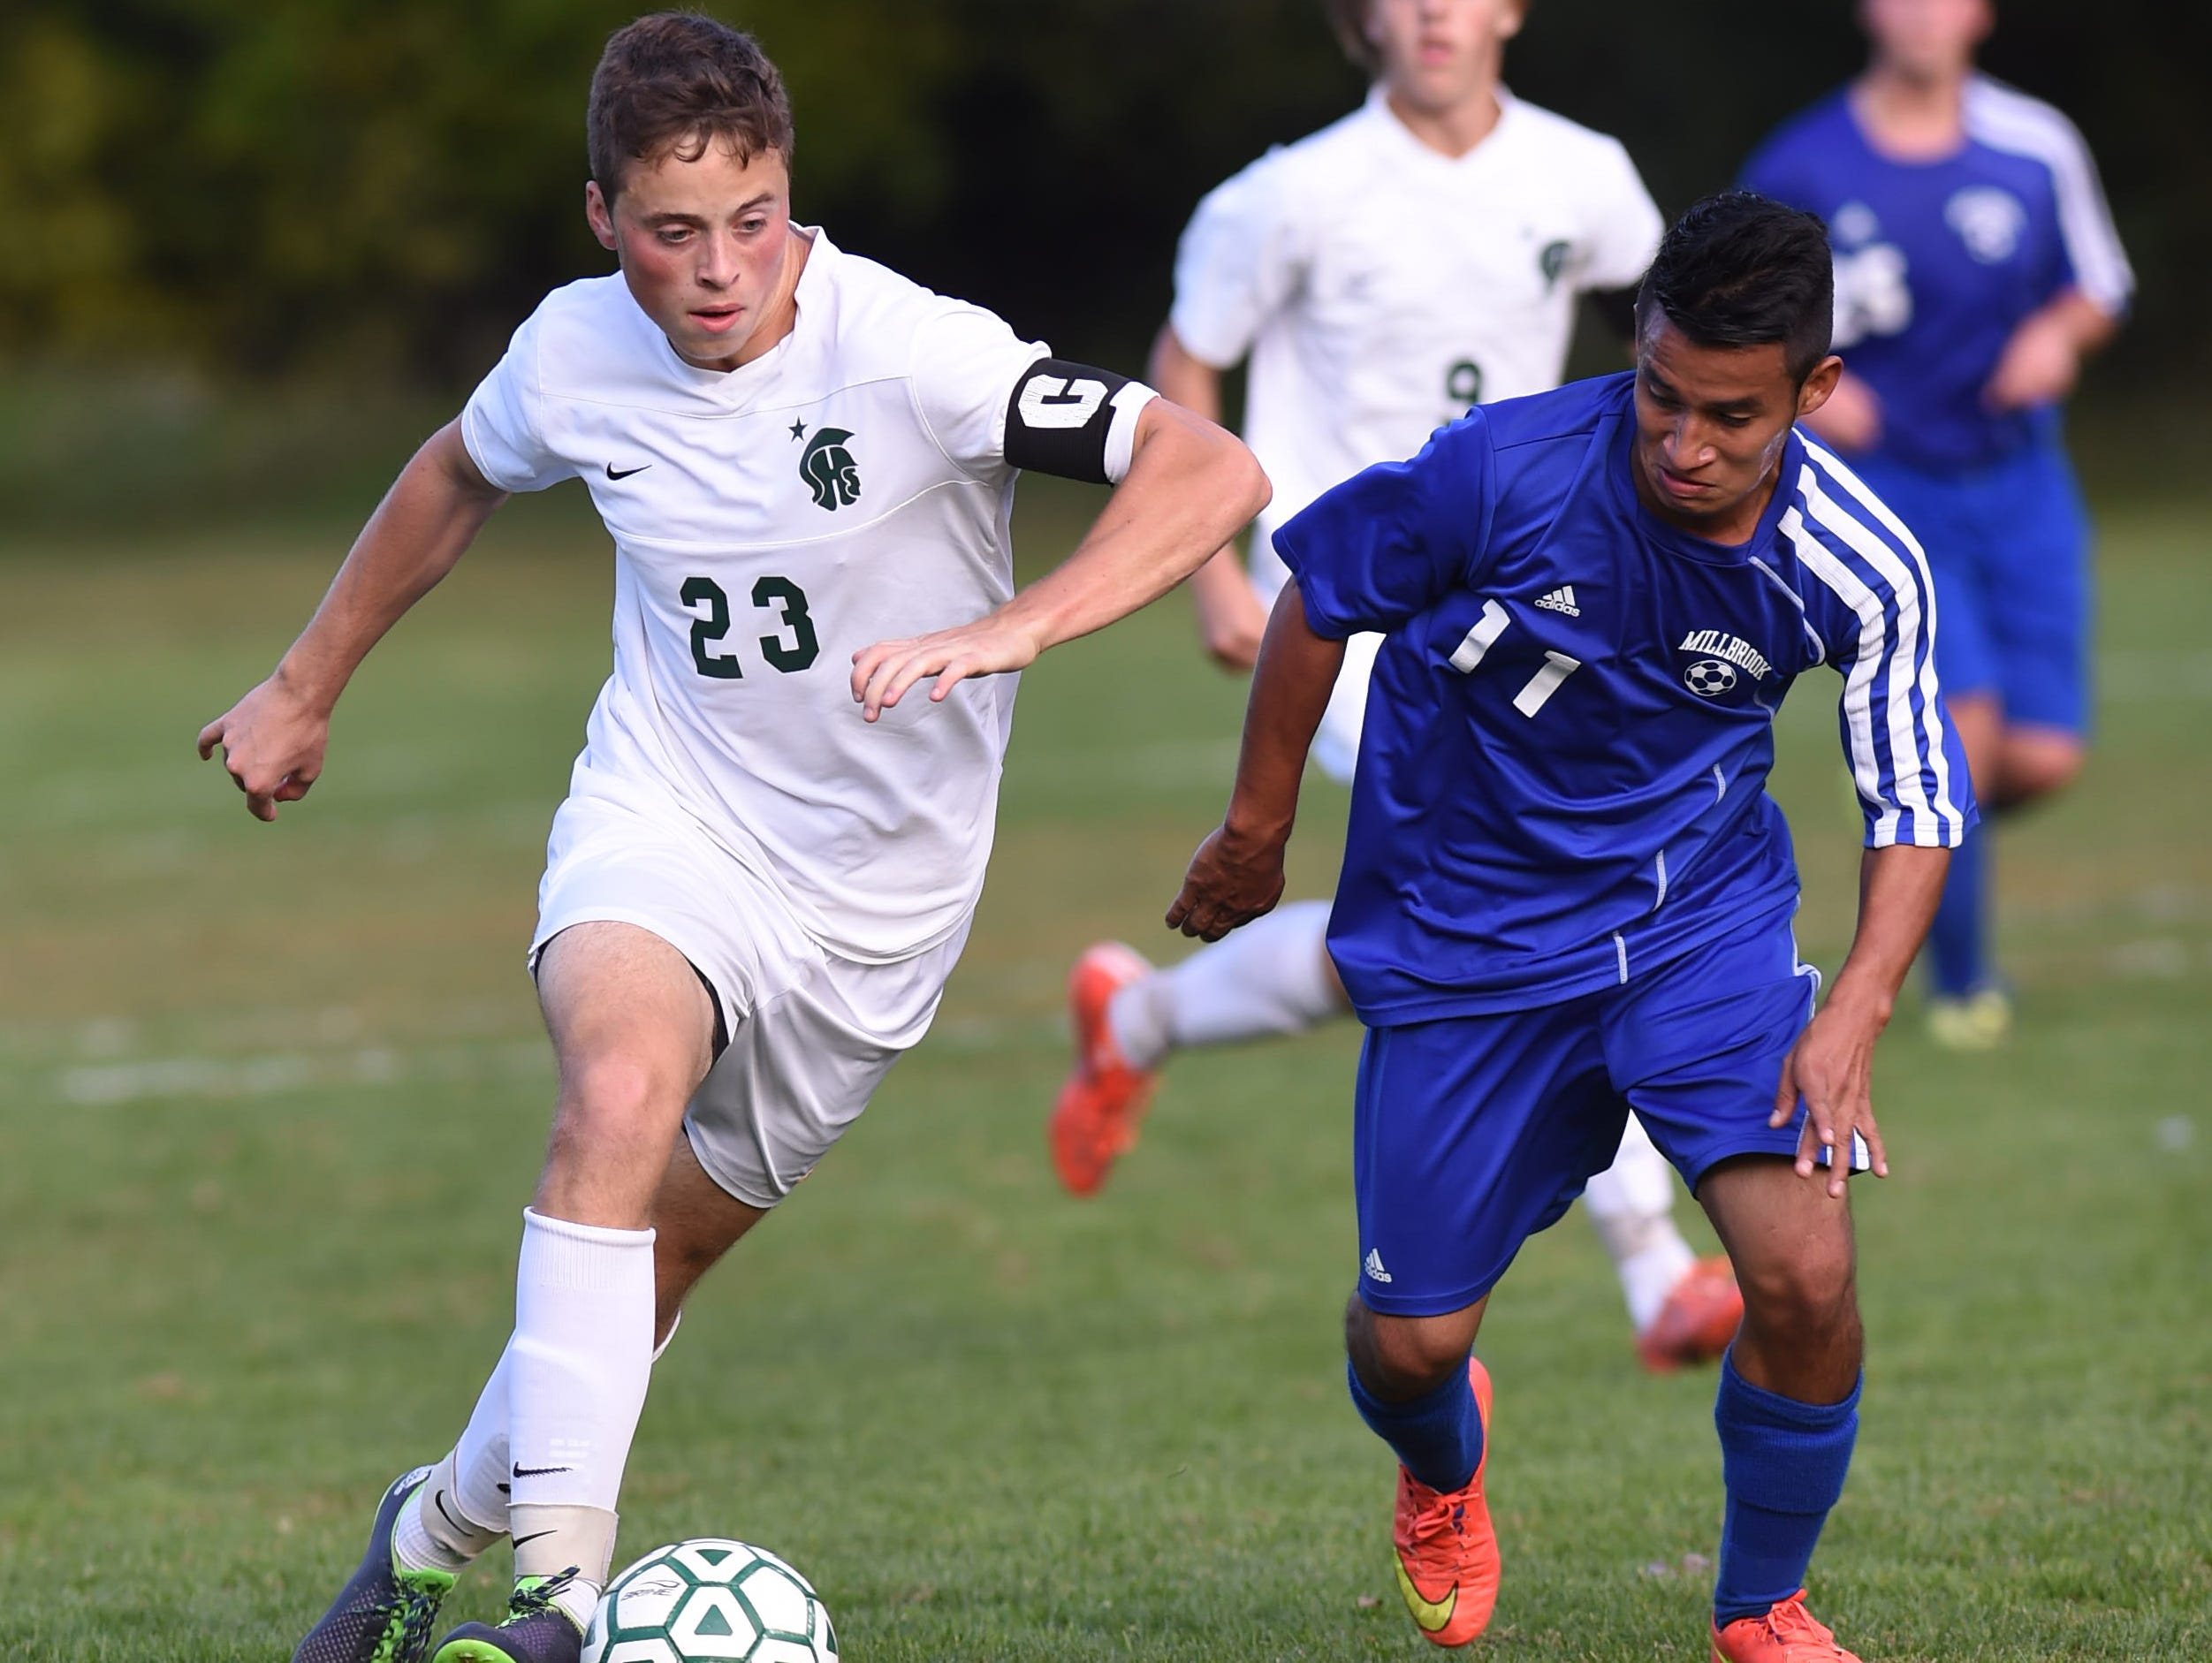 Spackenkill's Chris Stamper and Millbrook's Bryan Oliveros Martinez battle for the ball during Thursday's game in Poughkeepsie.